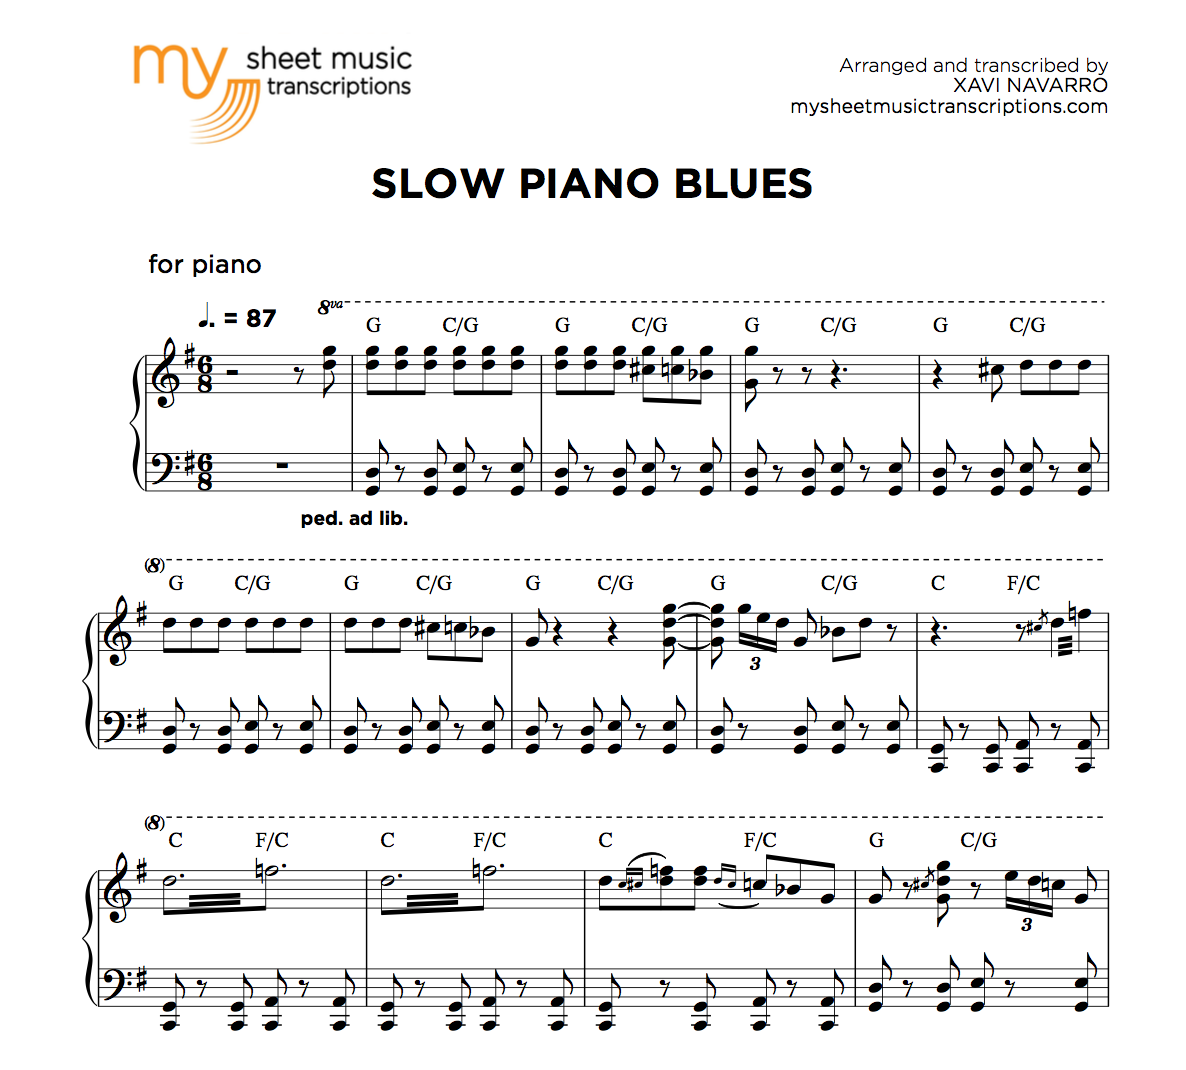 Slow piano blues in g sheet music pdf my sheet music slow piano blues in g sheet music pdf hexwebz Gallery